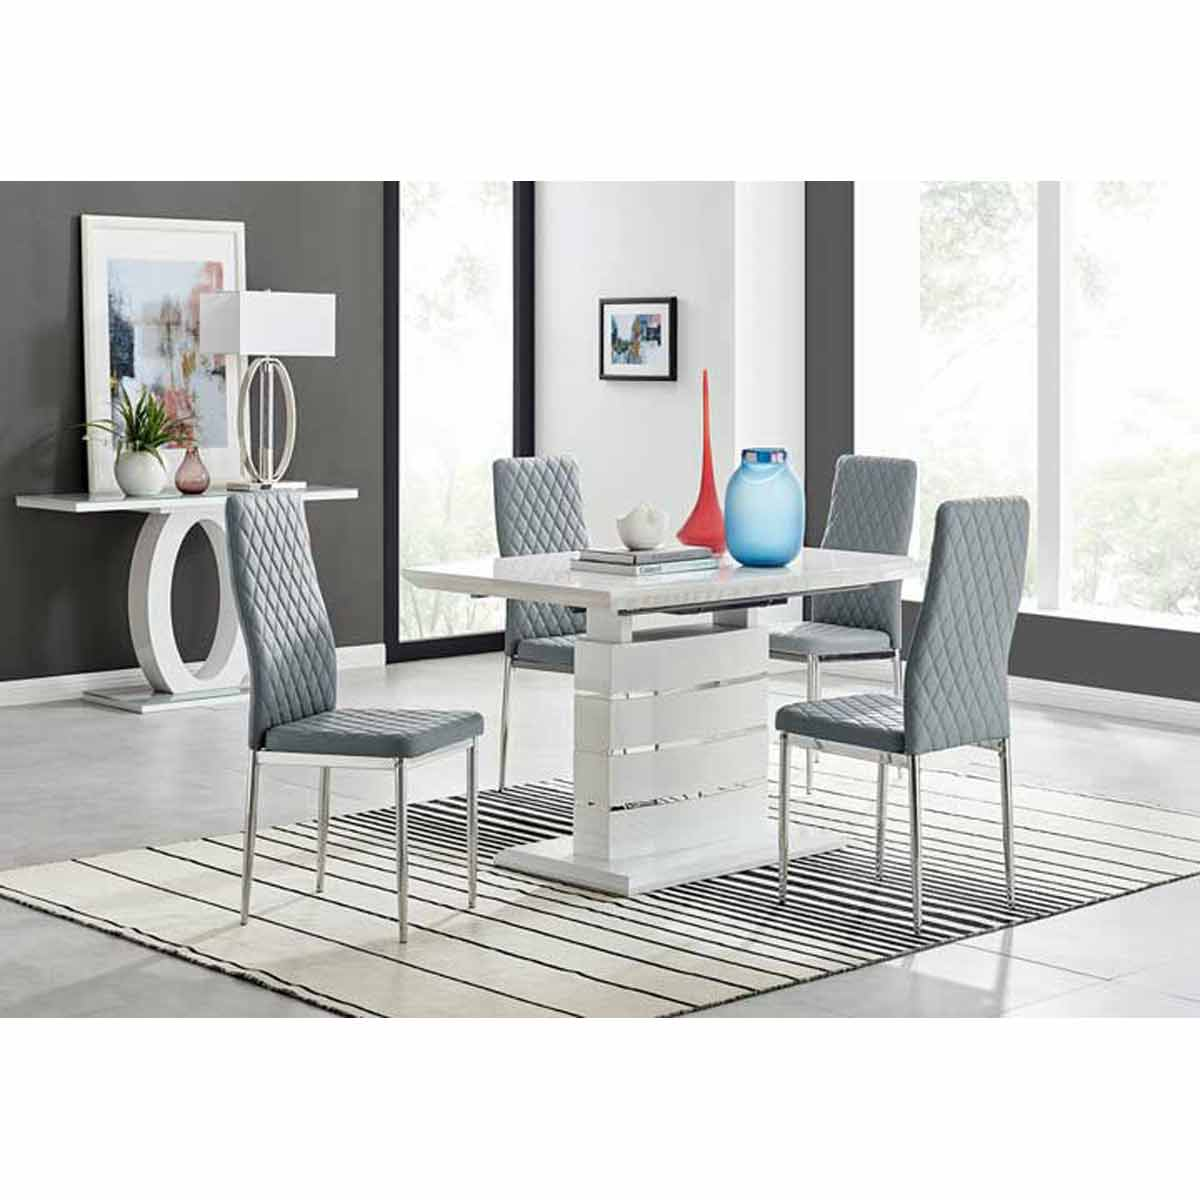 Furniture Box Renato 120cm High Gloss Extending Dining Table and 4 Grey Milan Chairs